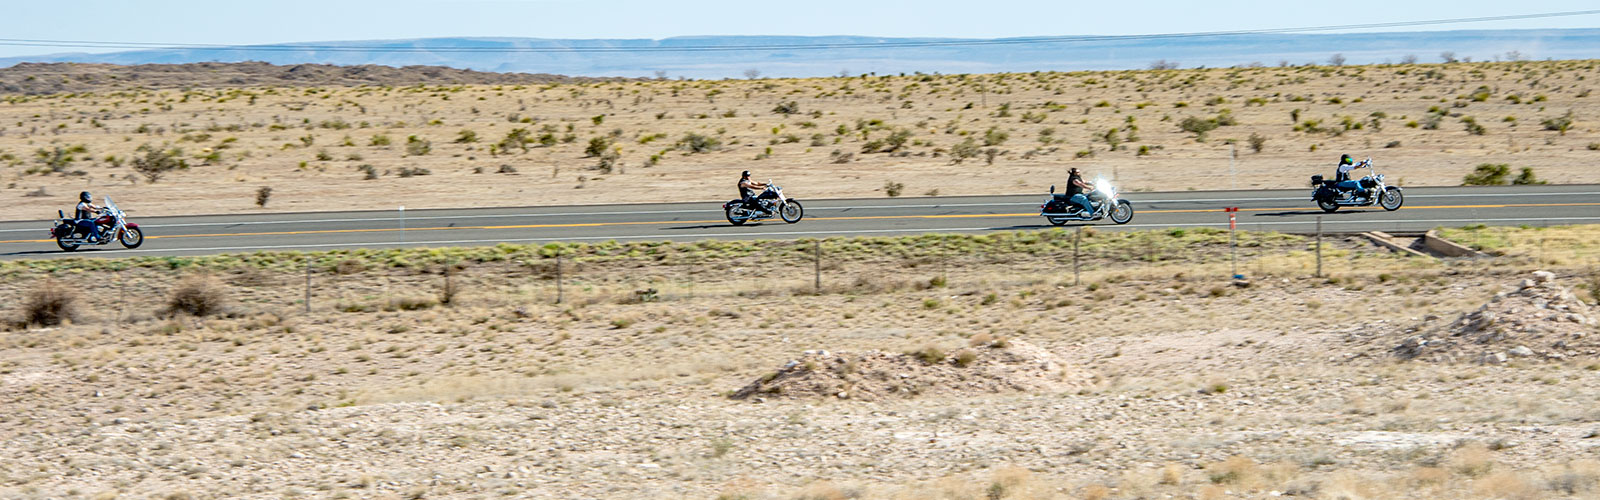 Bikers on the highway in the Big Bend.